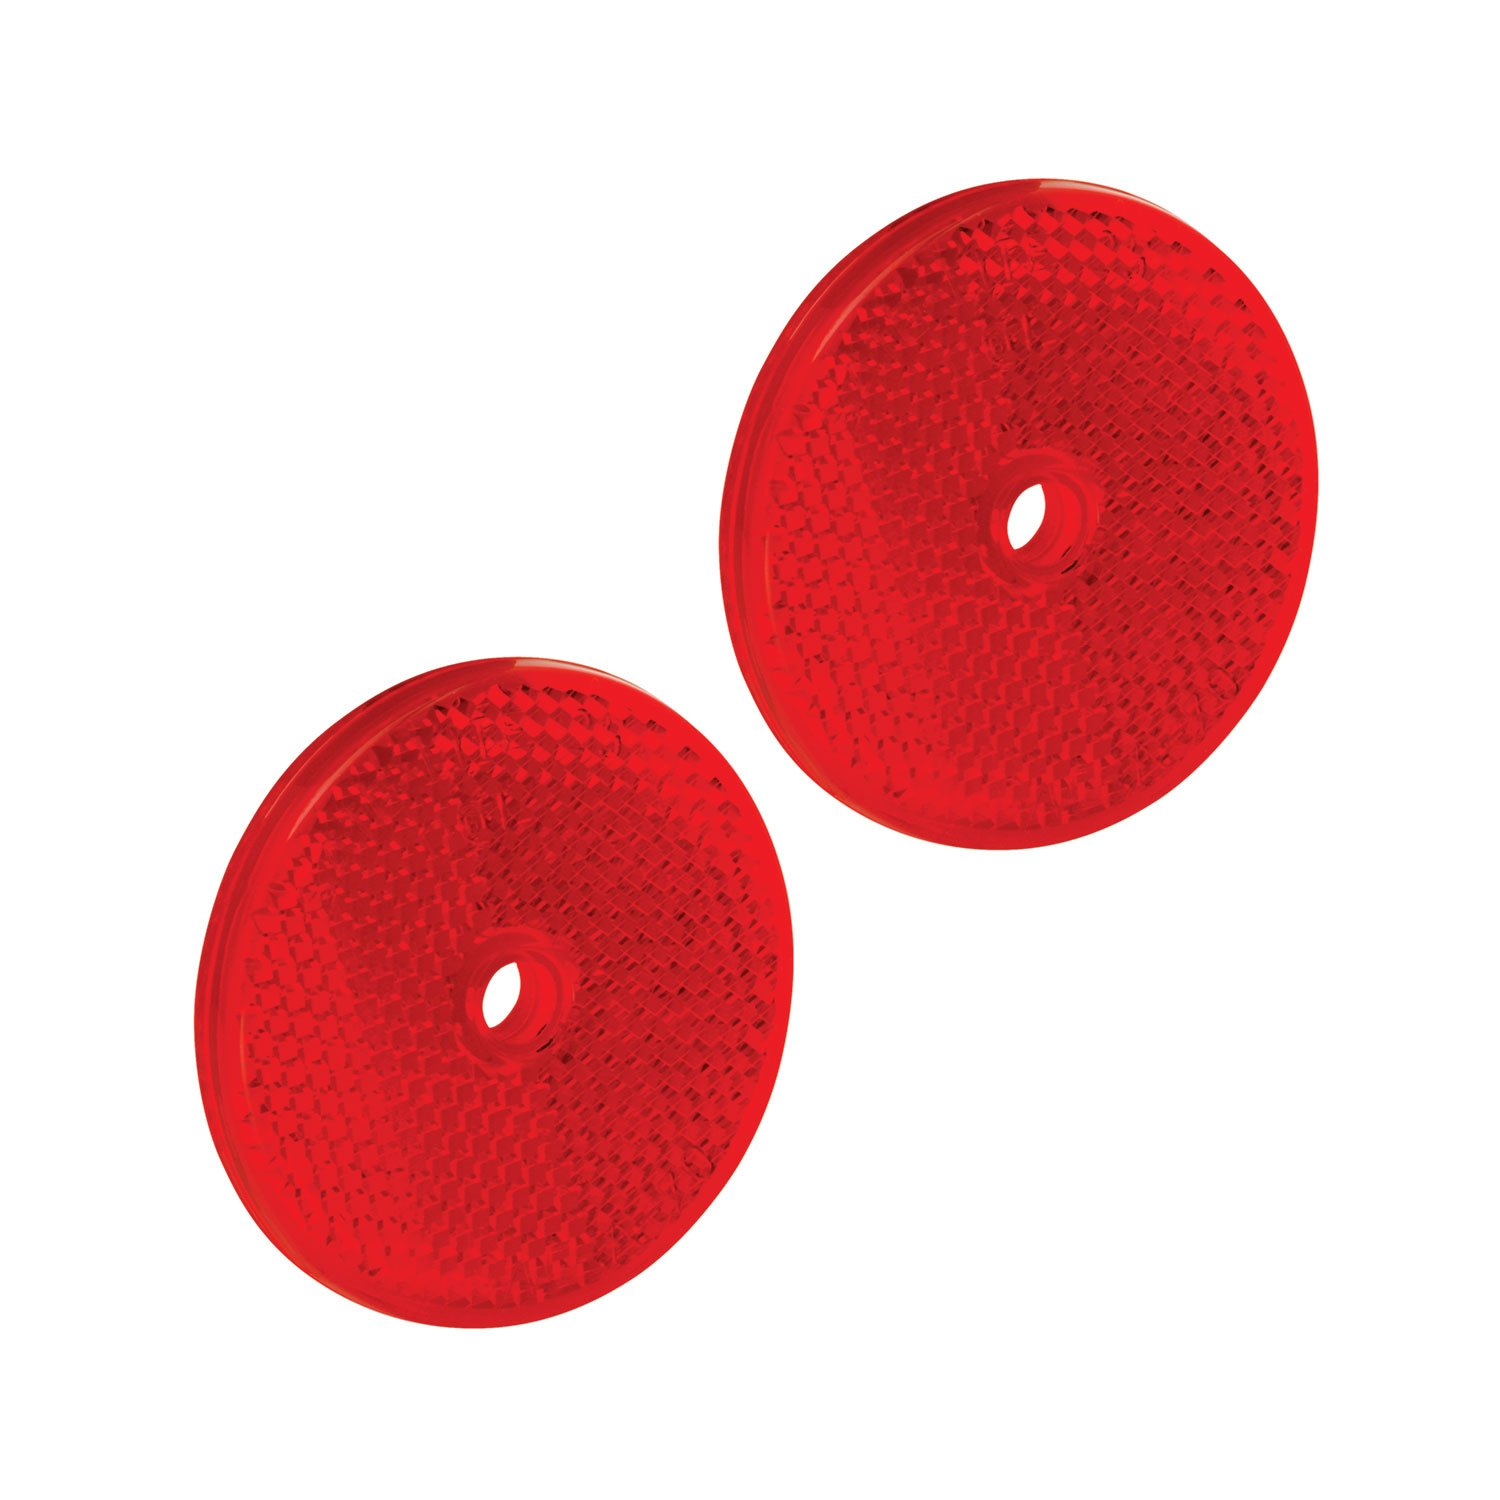 Bargman 74-71-170 Class A 2-3//16 Round Red Reflector with Center Mounting Hole 2 Pack 0404.1037 W18-0395